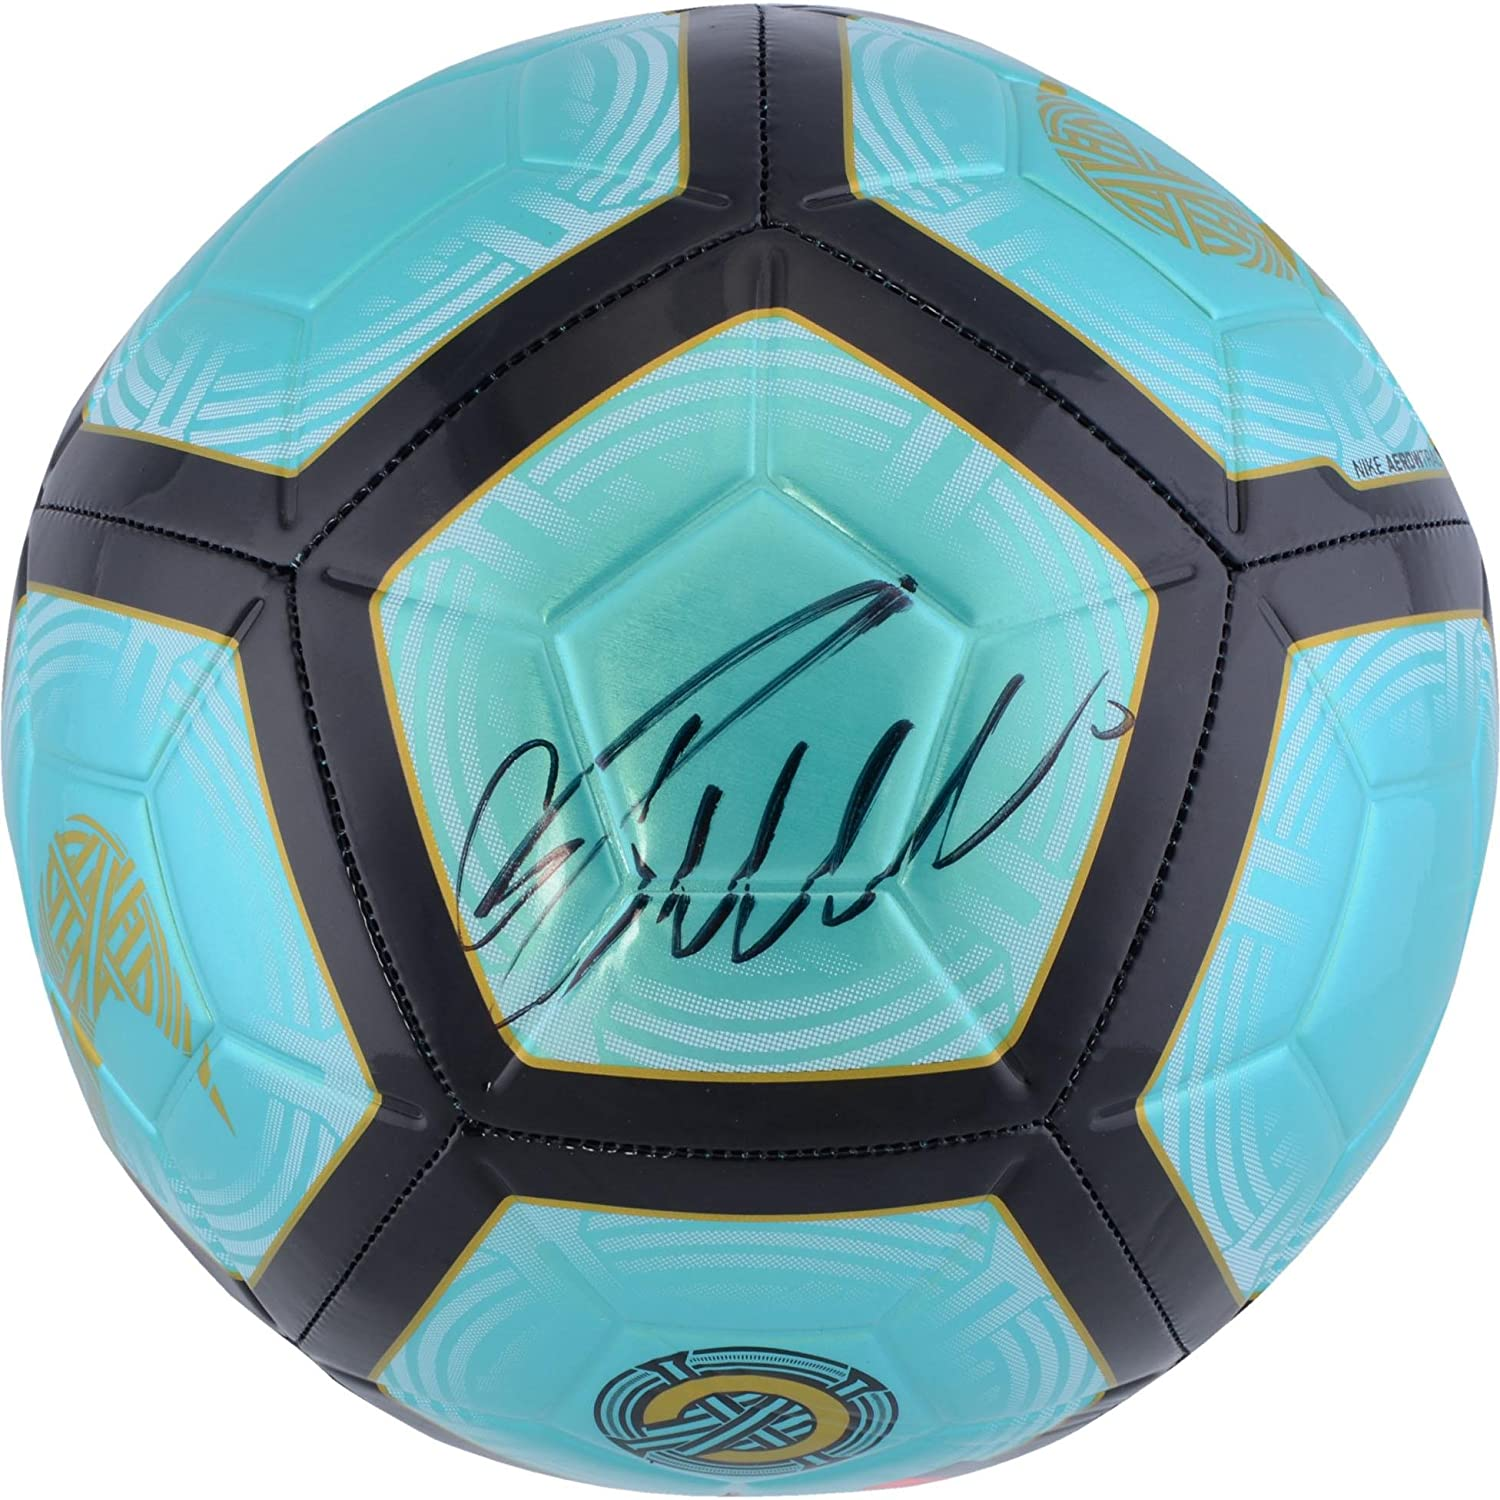 760a34f7a6 Cristiano Ronaldo Juventus F.C. Autographed Teal Nike Mercurial Soccer Ball  - Fanatics Authentic Certified